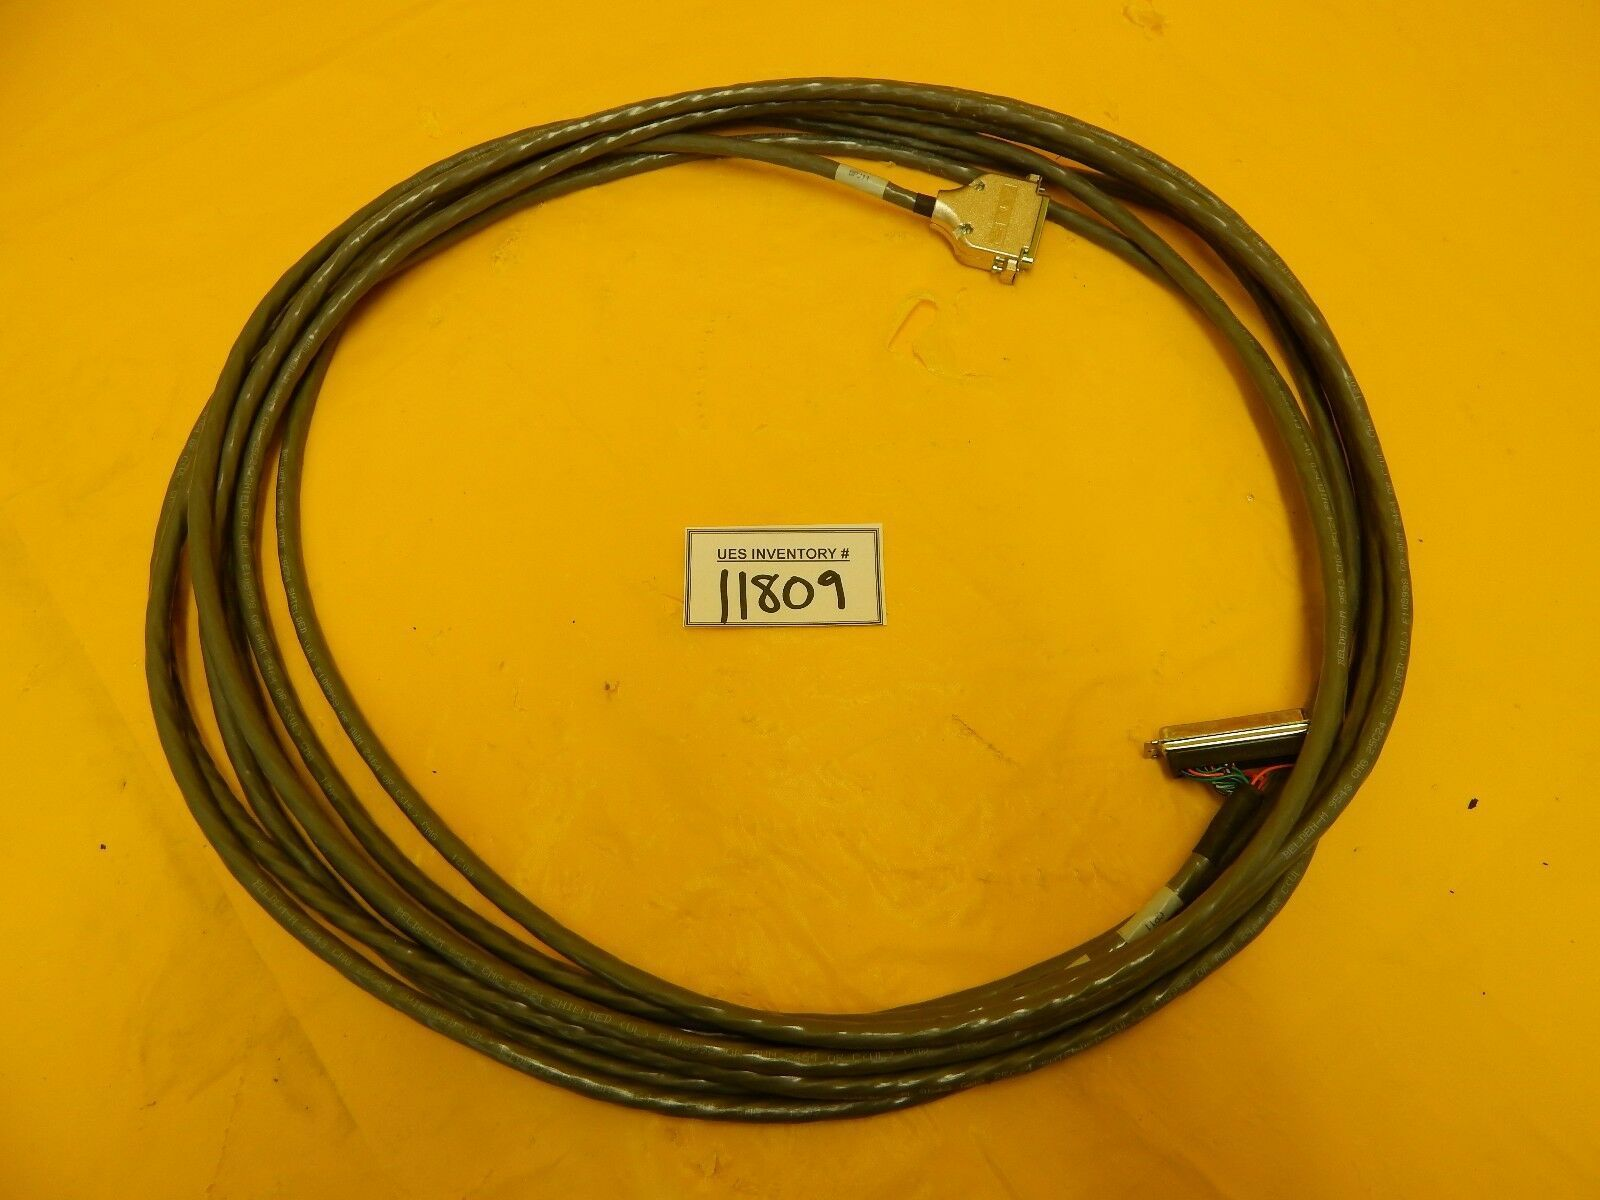 AMAT Applied Materials 0150-35642 C/A M/F EXH Umbilical 32' Cable Used Working